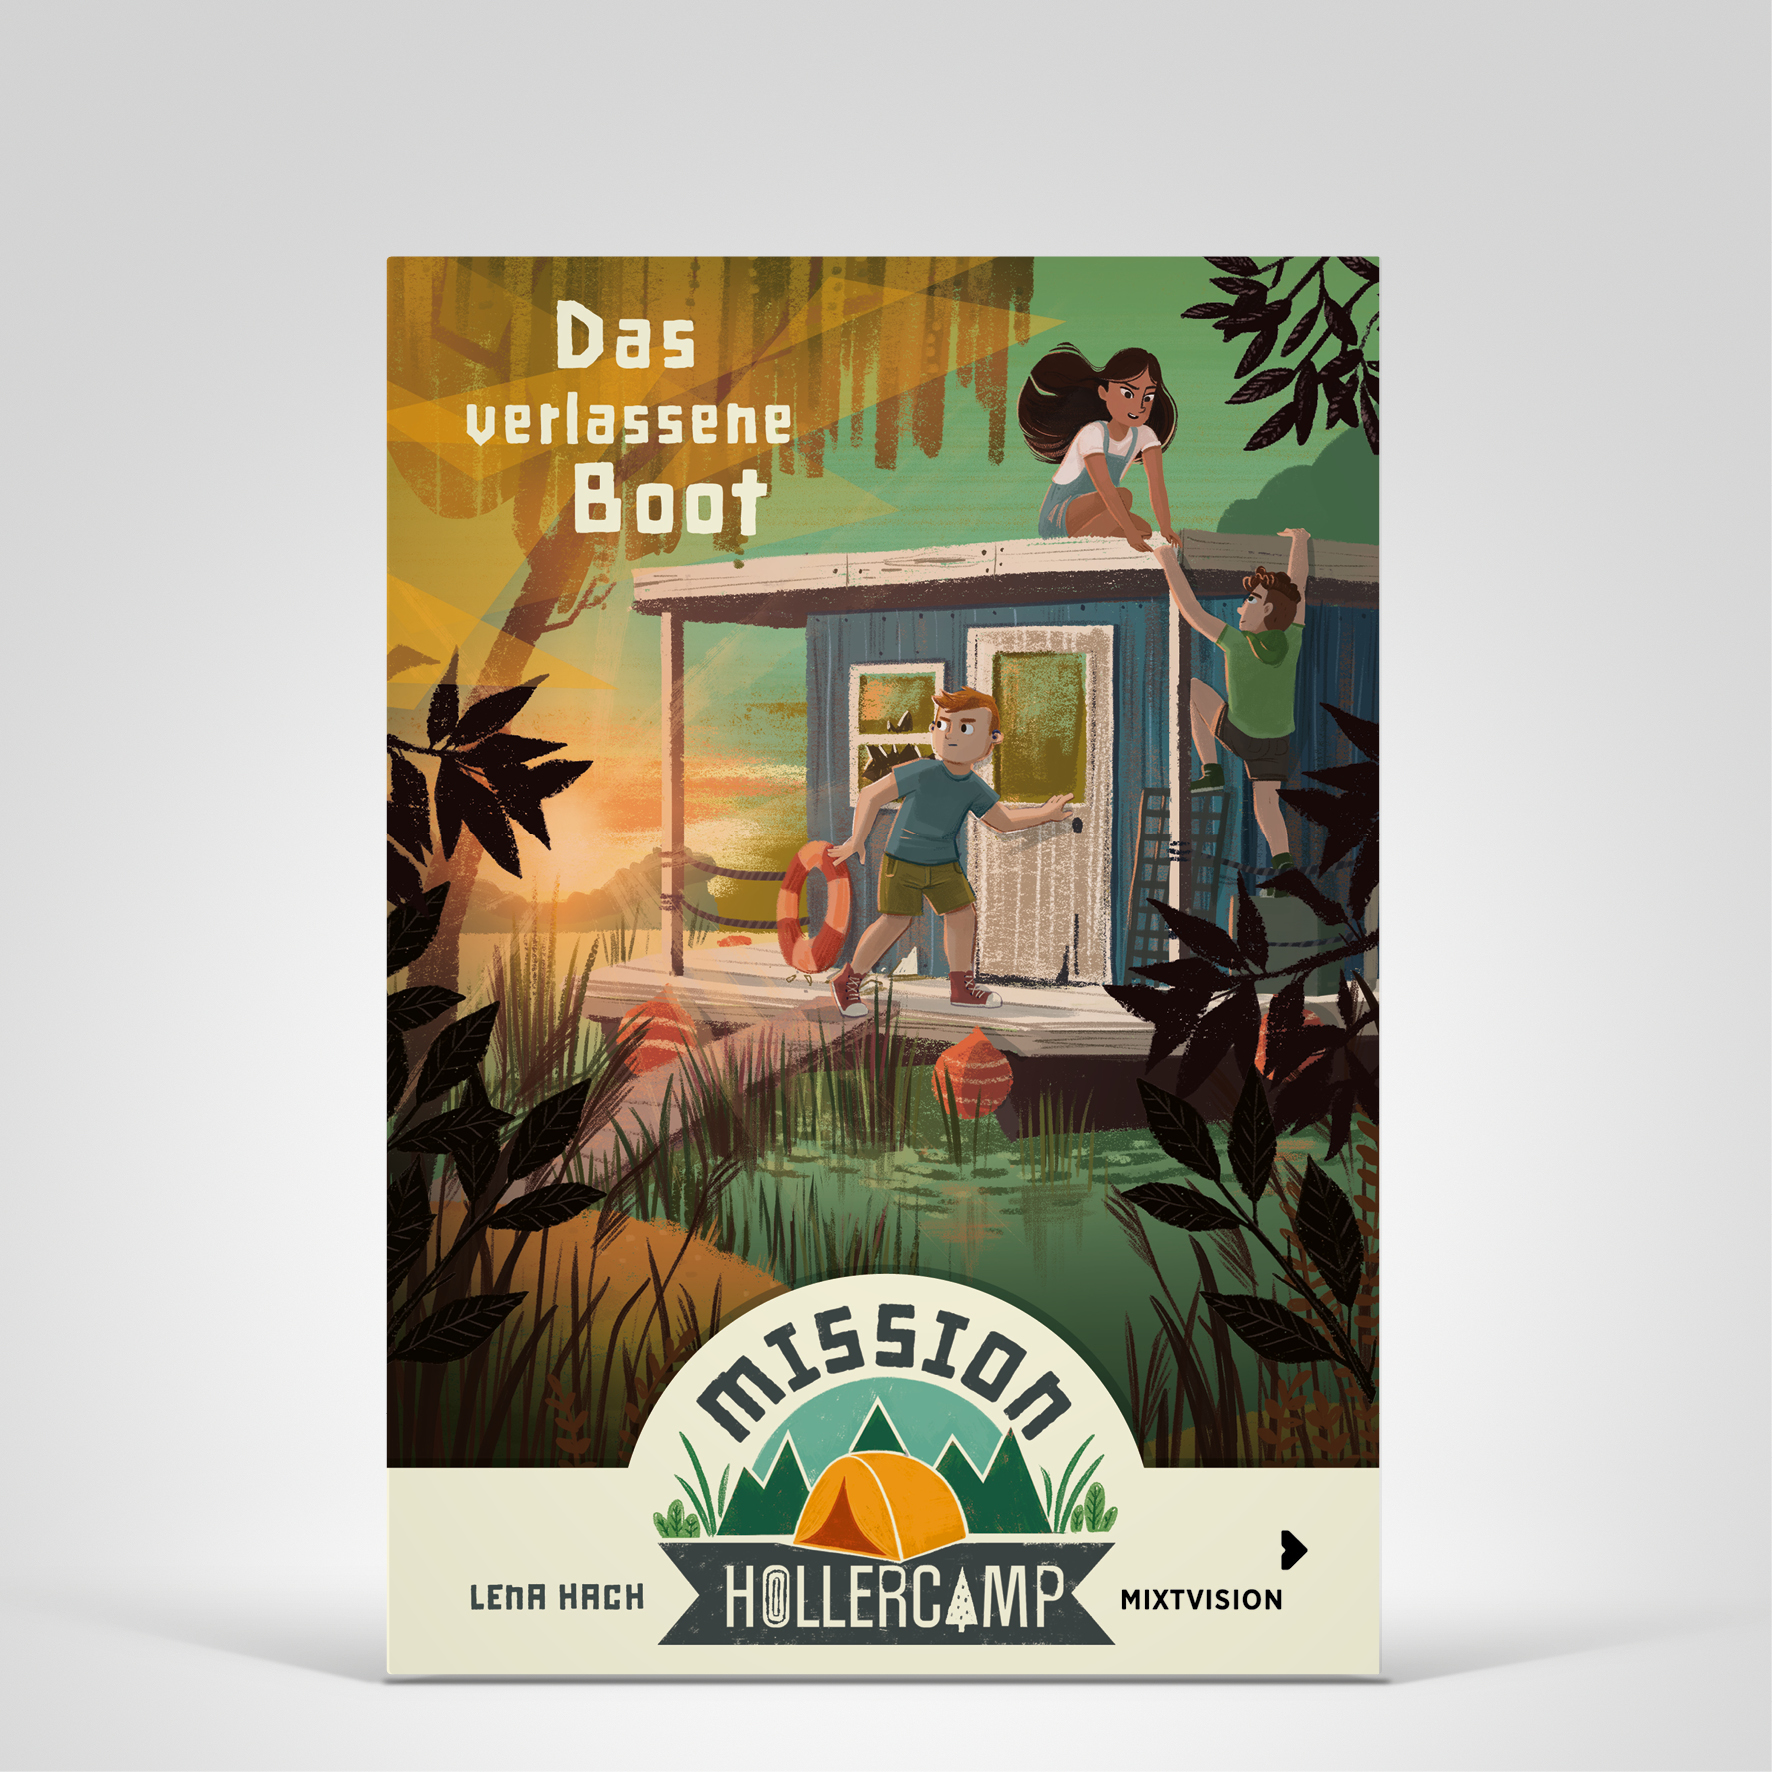 Mission Hollercamp Bd2, Cover-Abbildung